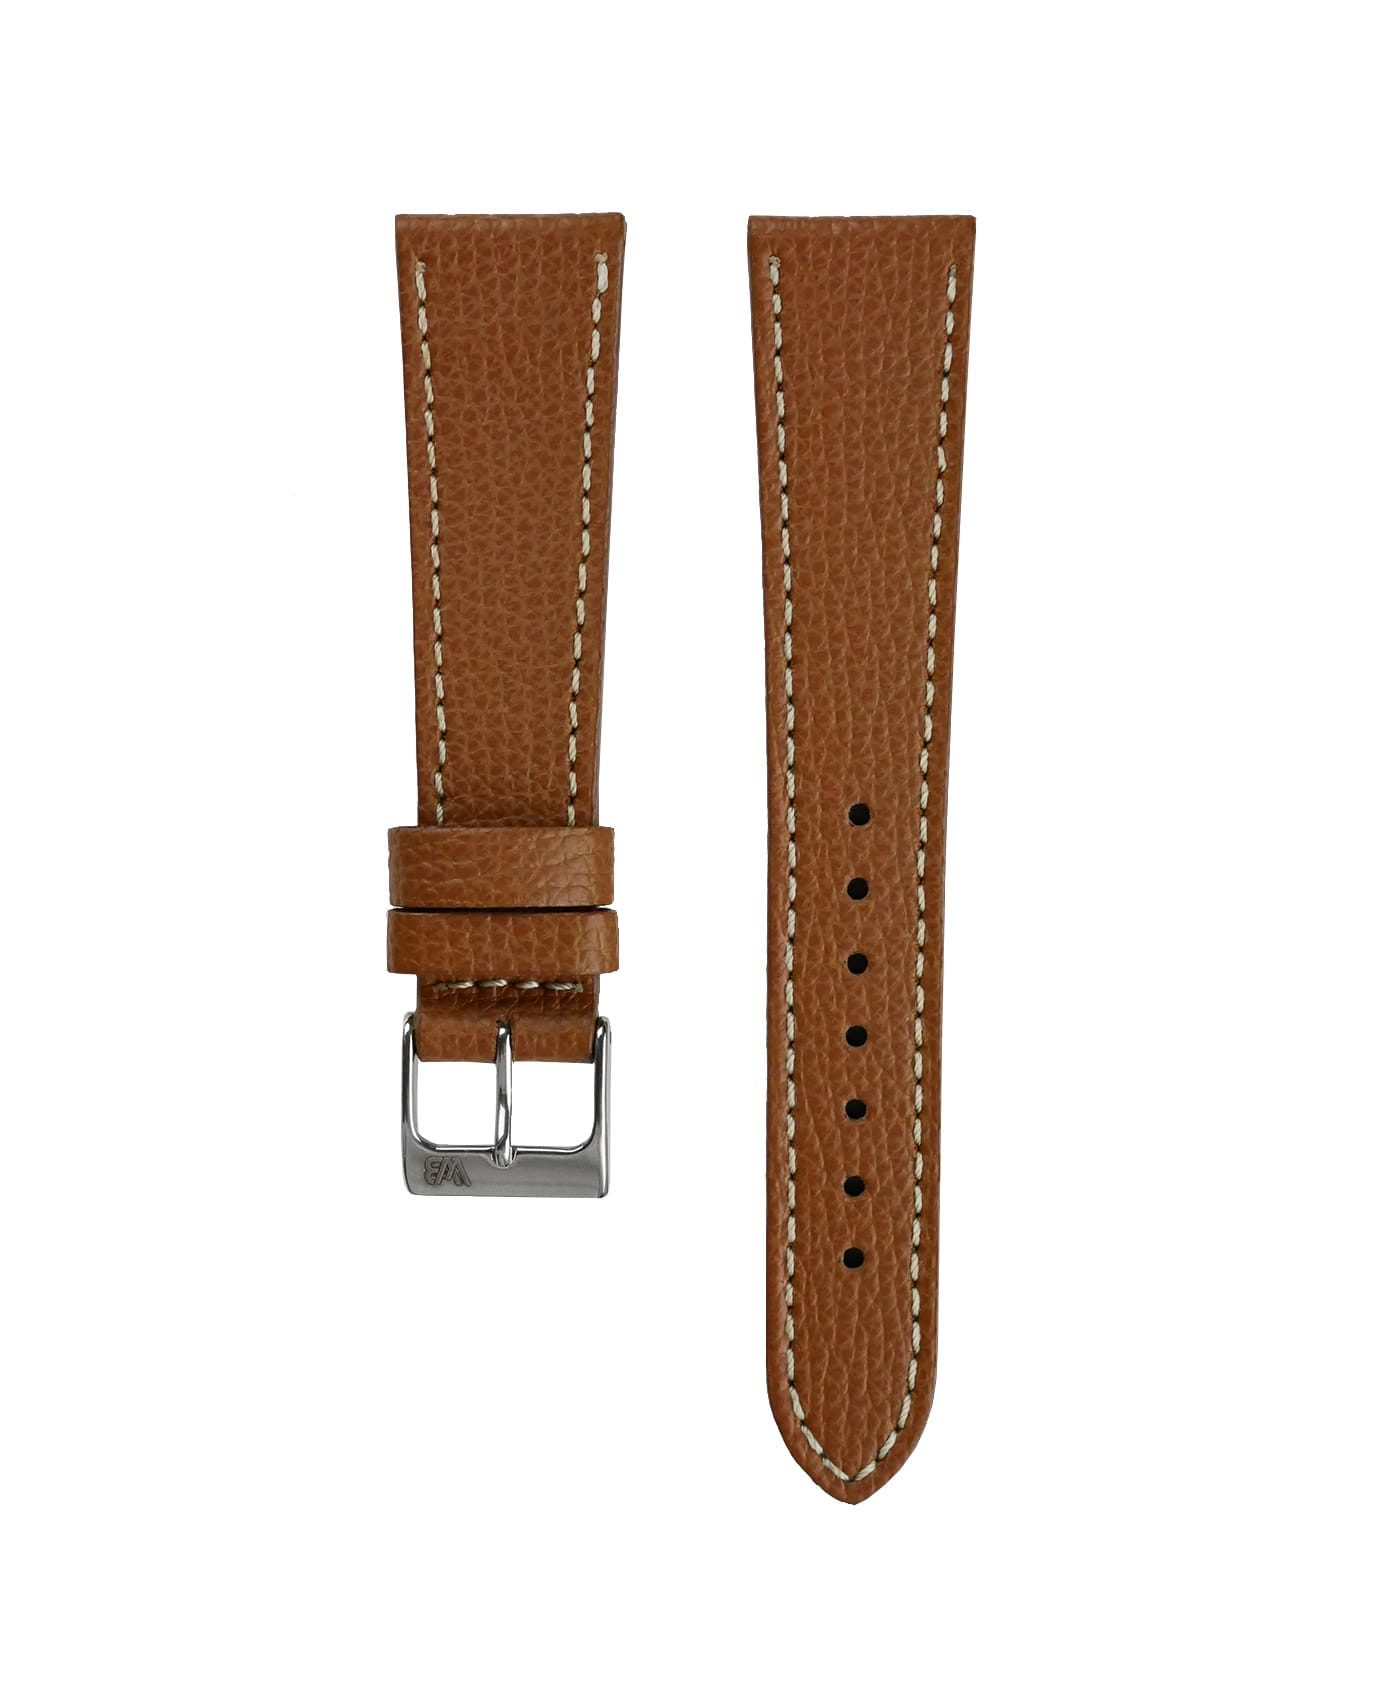 Textured calfskin leather watch strap tanned light brown front watchbandit